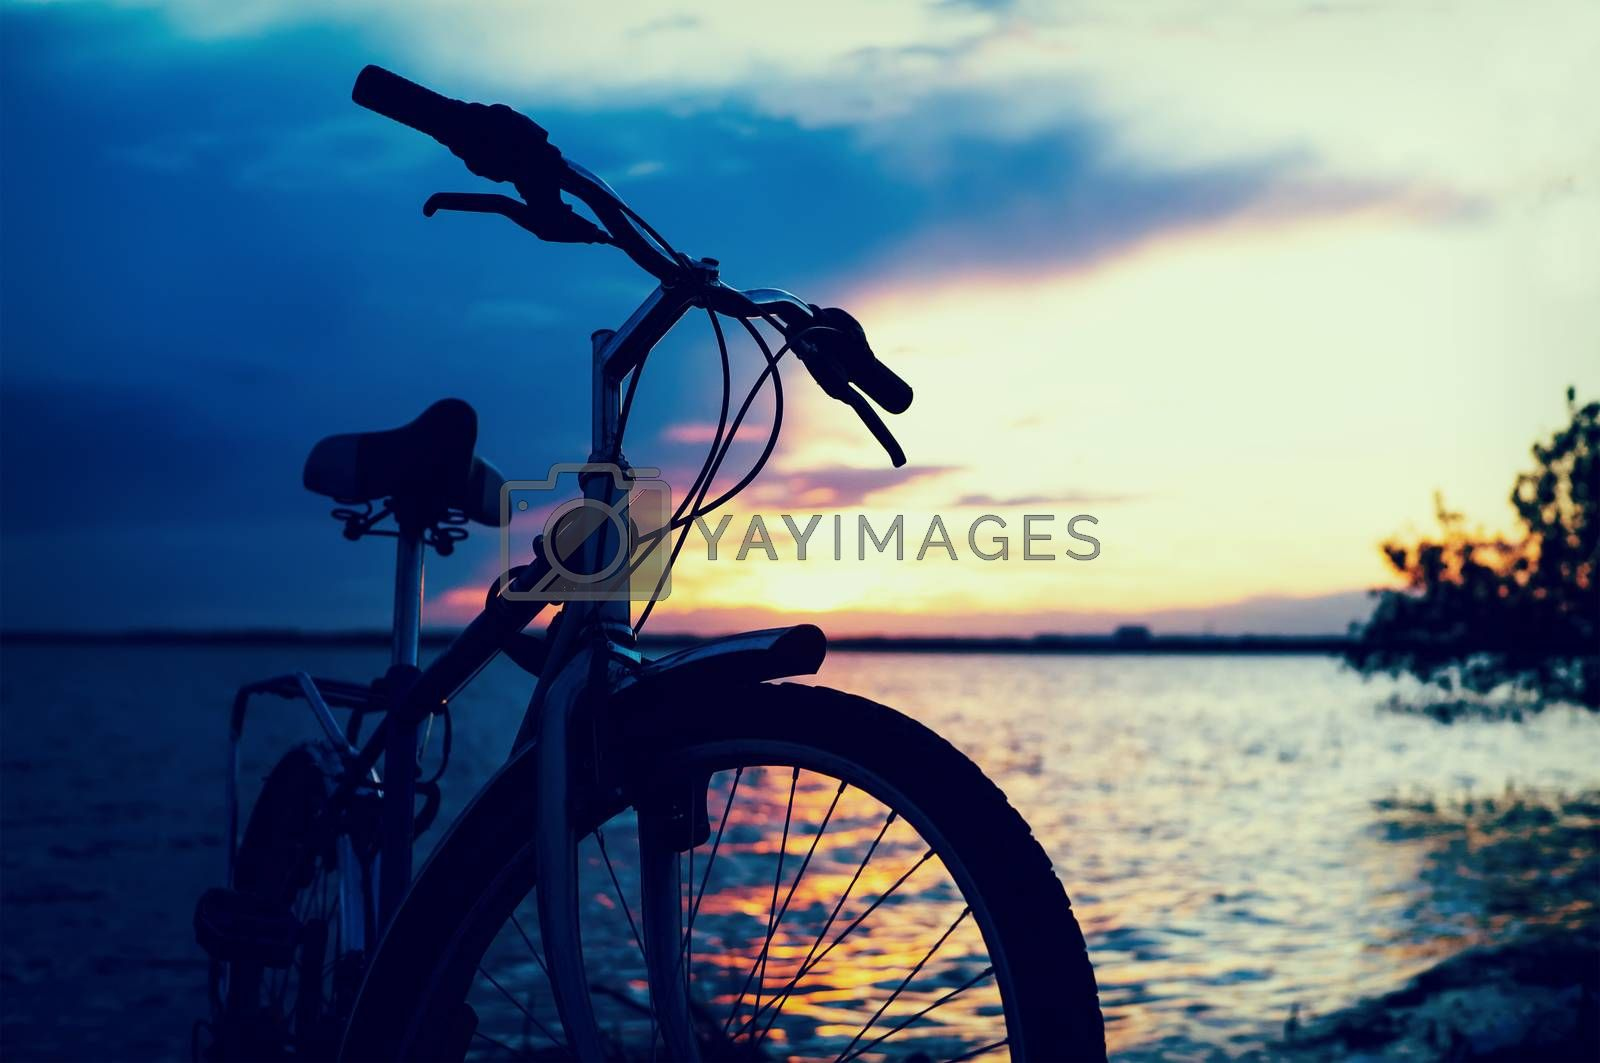 Bicycle near lake during sunset.Vintage bike near the lake in the evening, warm sunset view.